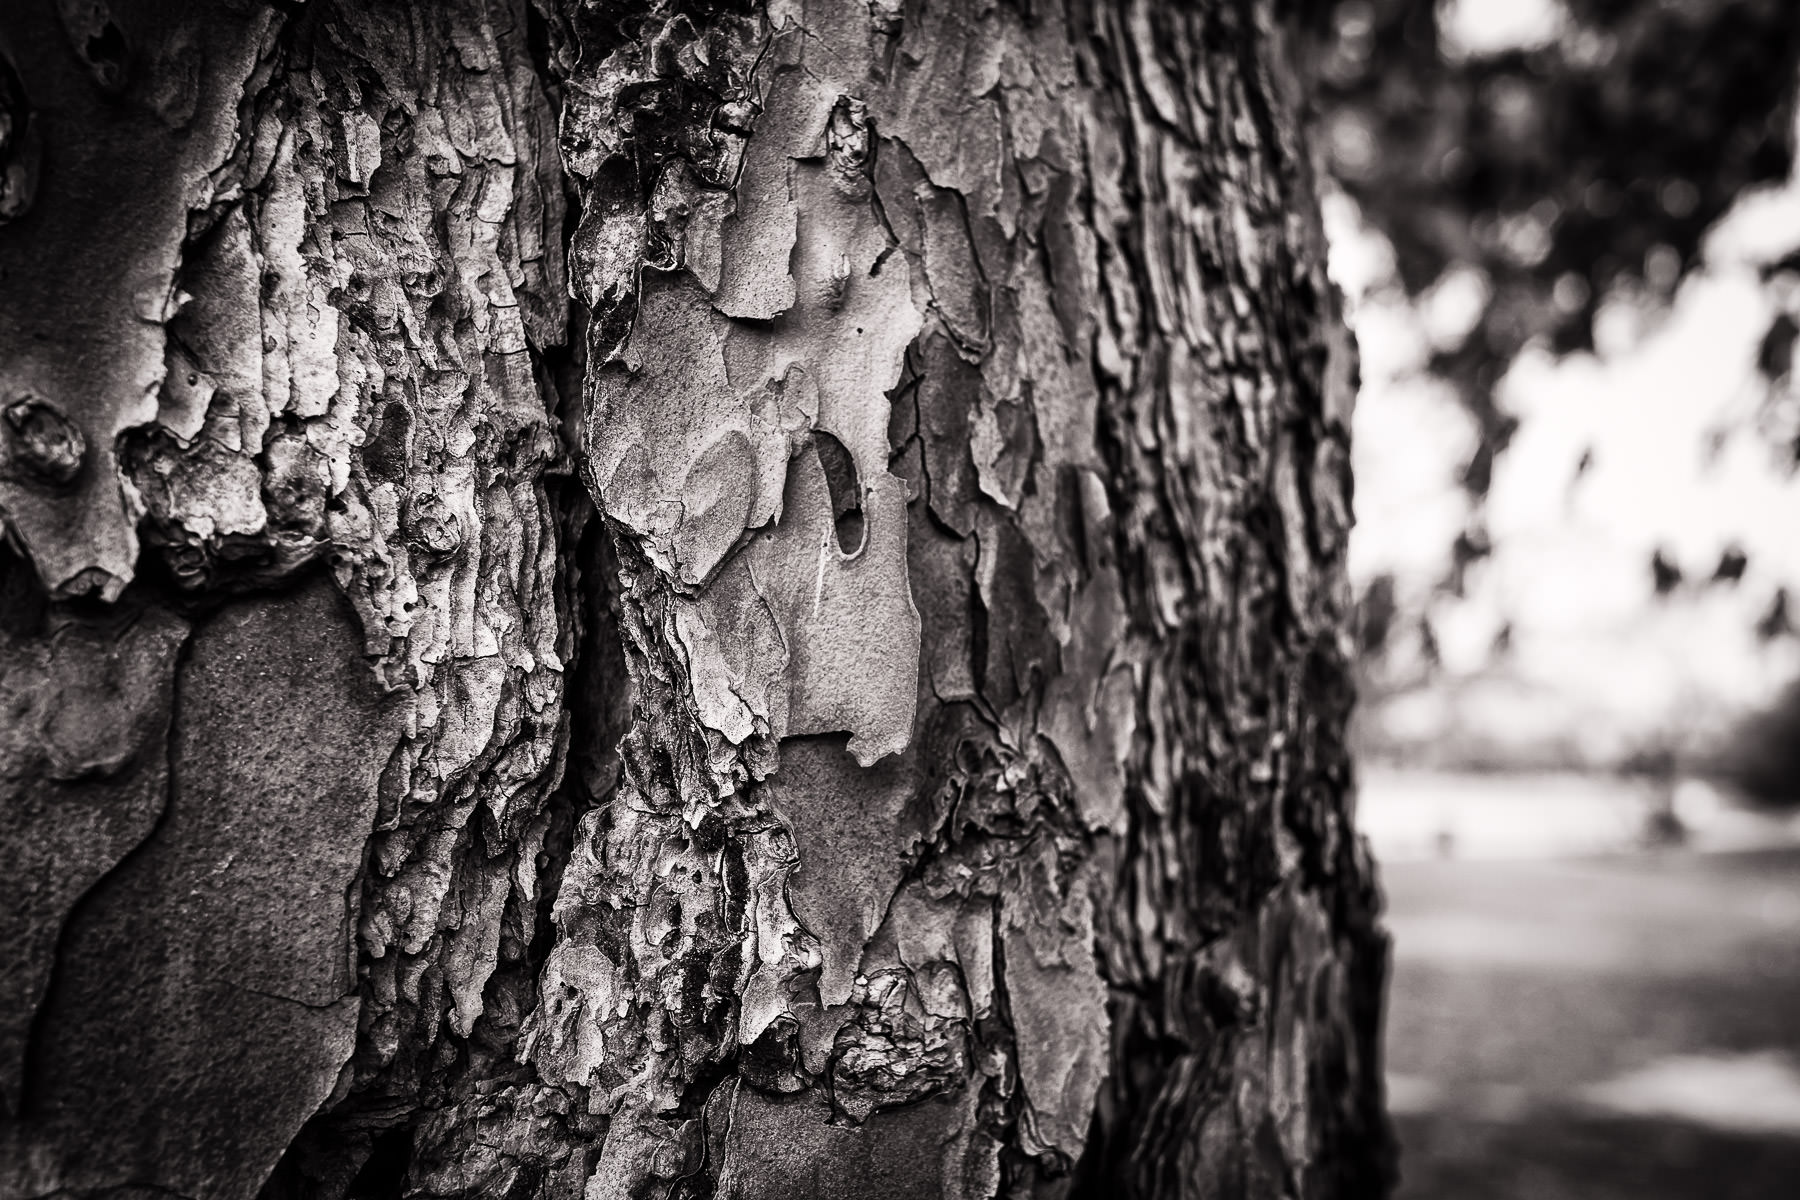 Detail of a pine tree's bark, spotted at Pollard Park, Tyler, Texas.